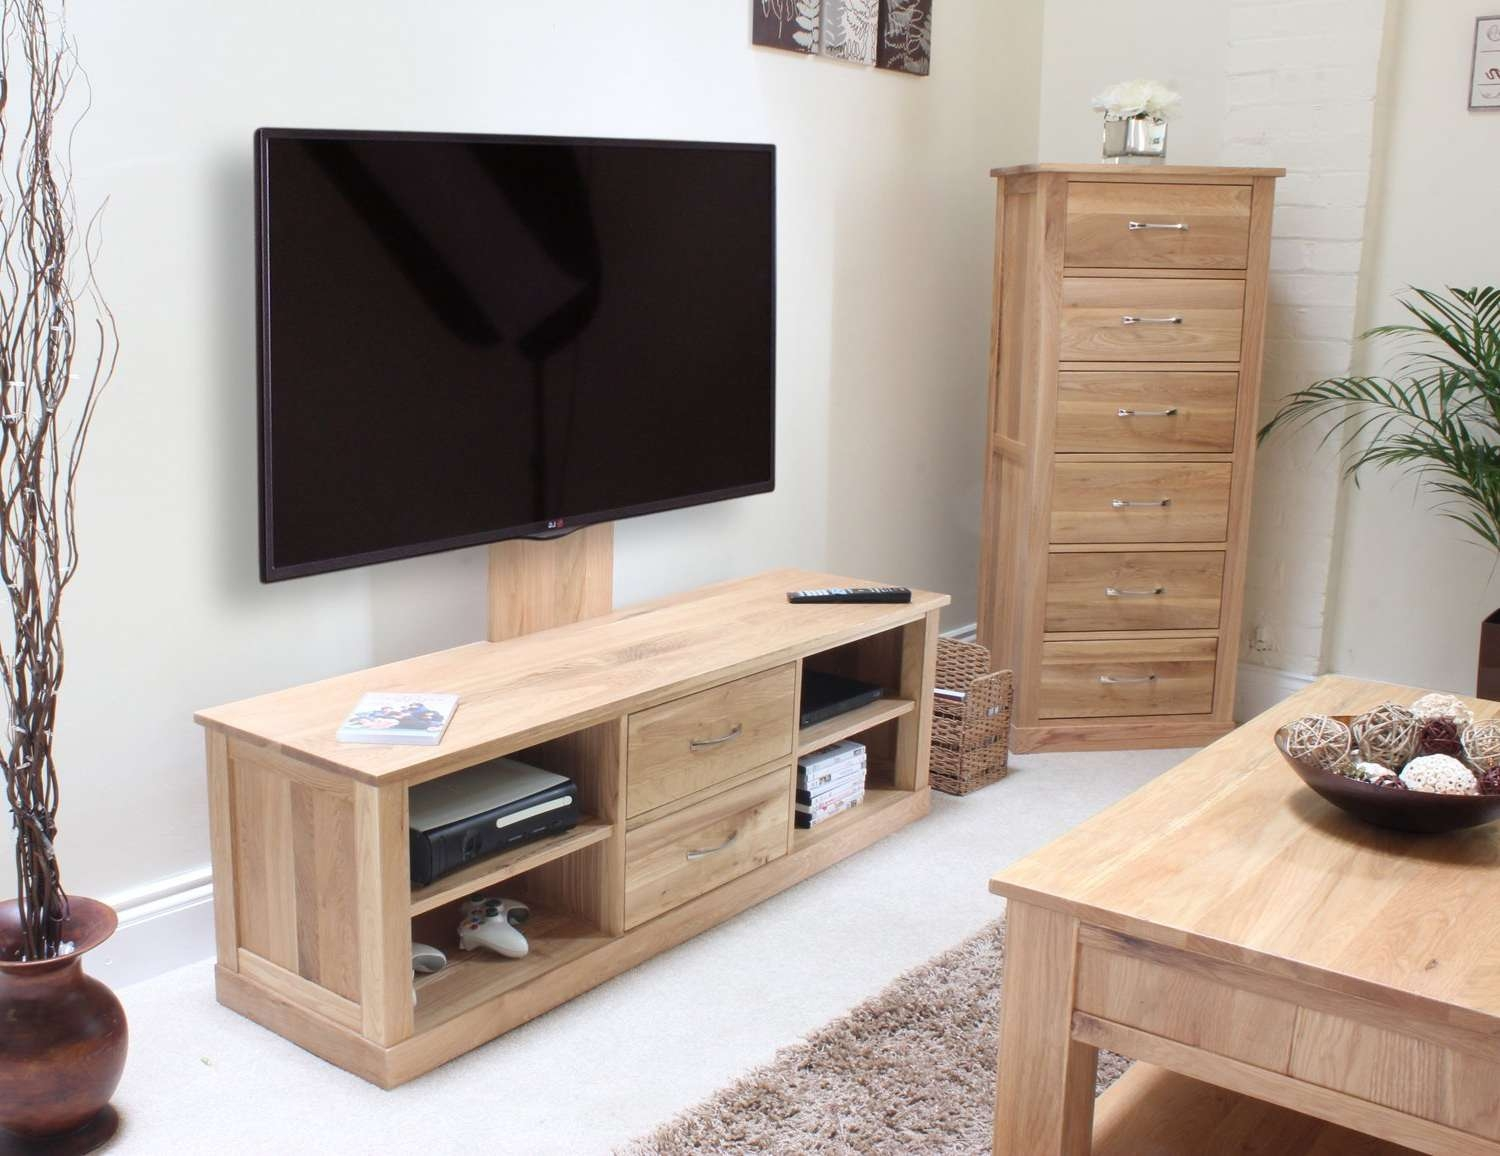 Mobel Oak Mounted Widescreen Television Cabinet – Azura Home Style Pertaining To Widescreen Tv Cabinets (View 18 of 20)